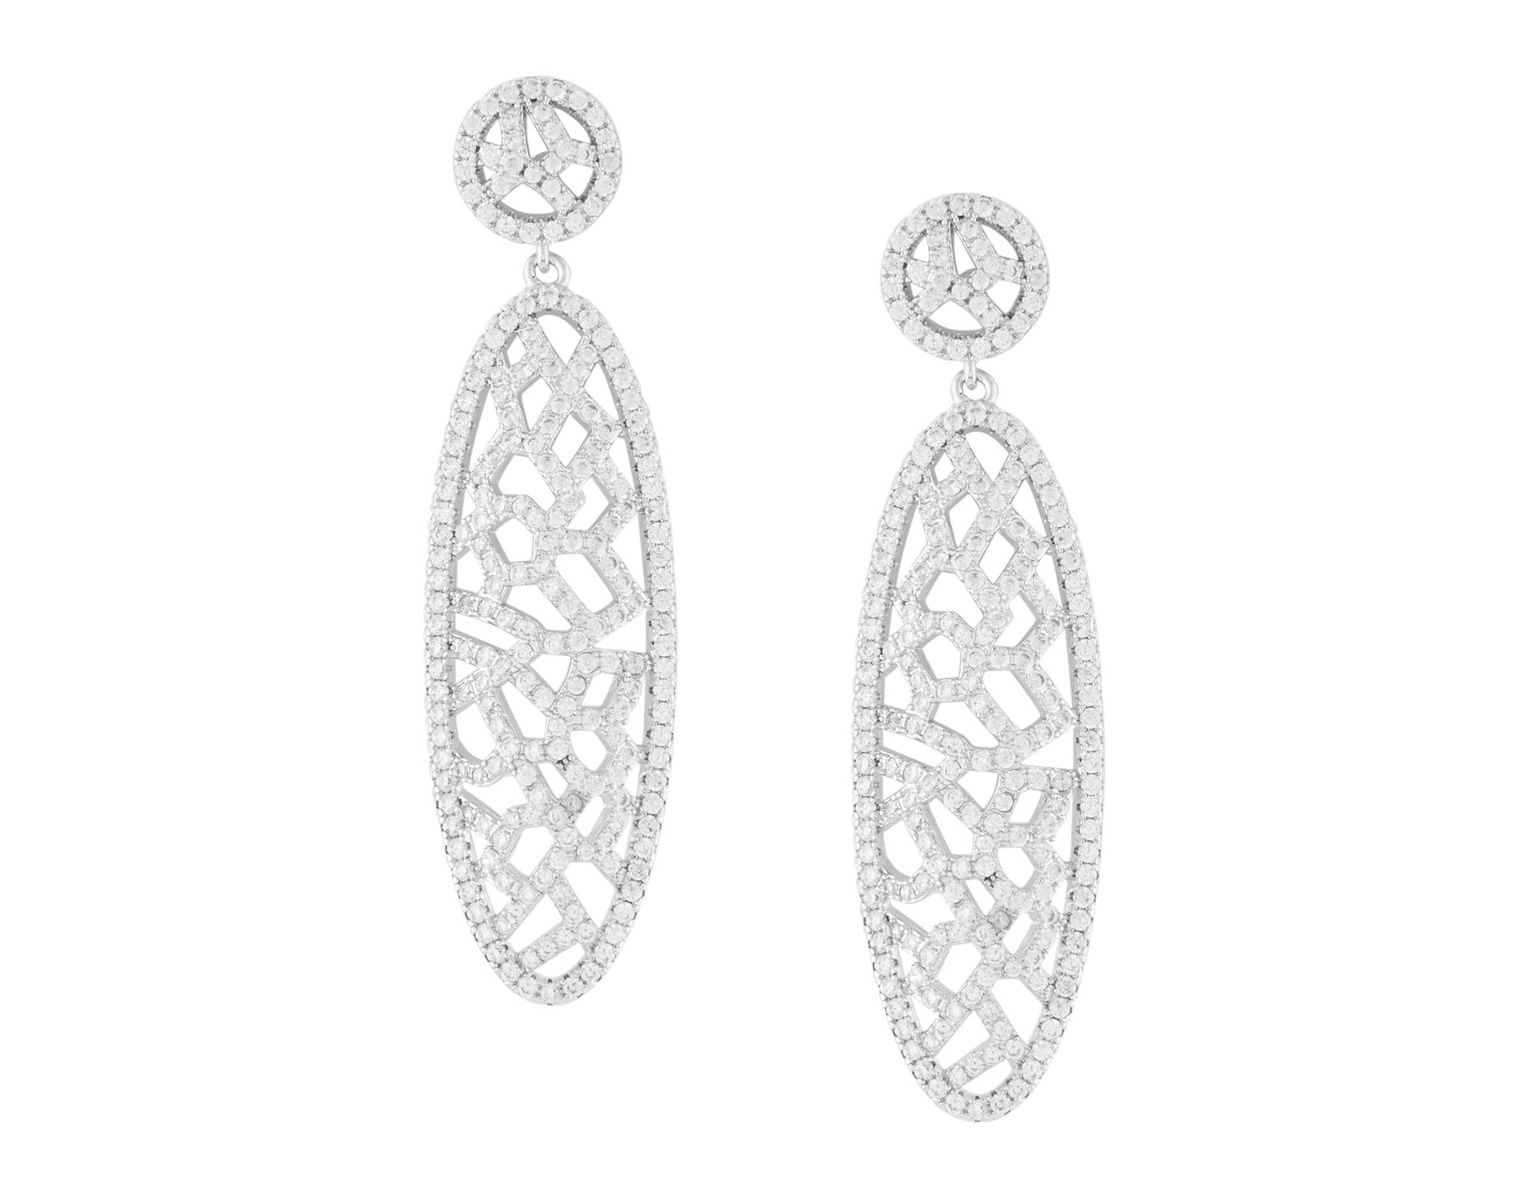 Oval Lattice Earrings